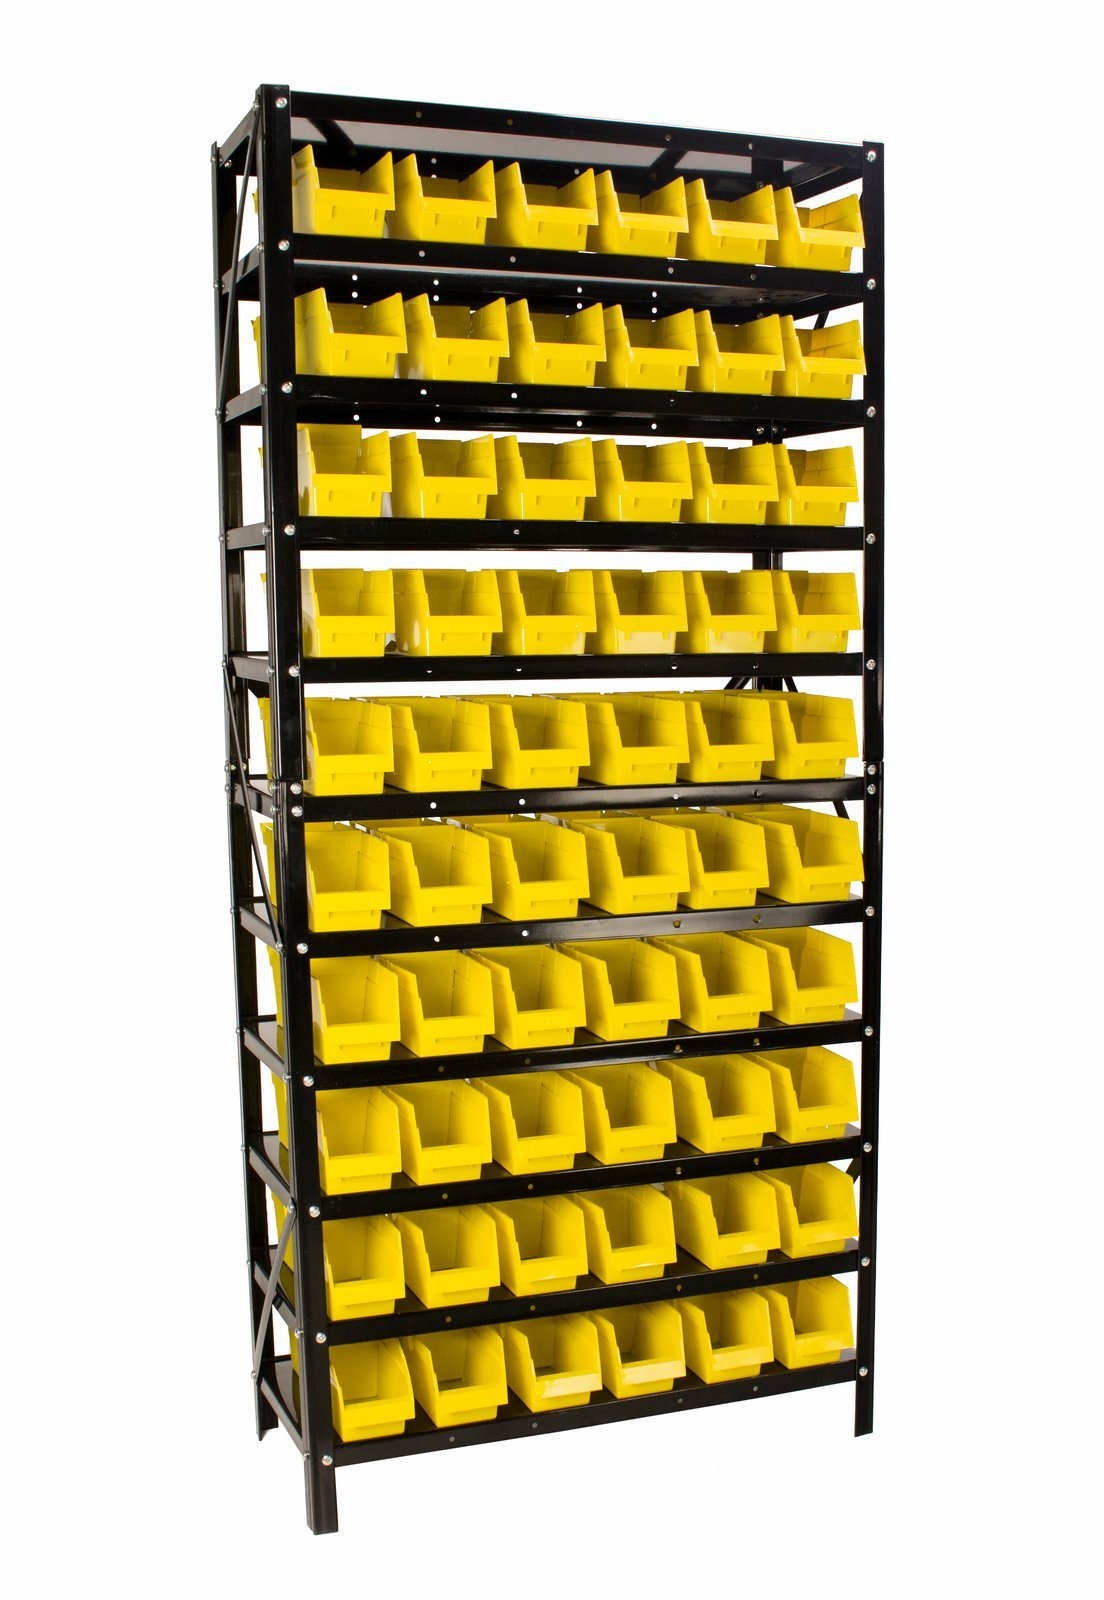 60 Bin Parts Rack easily Organize Nuts, Bolts, or Parts, Removable Parts Bins with Dividers